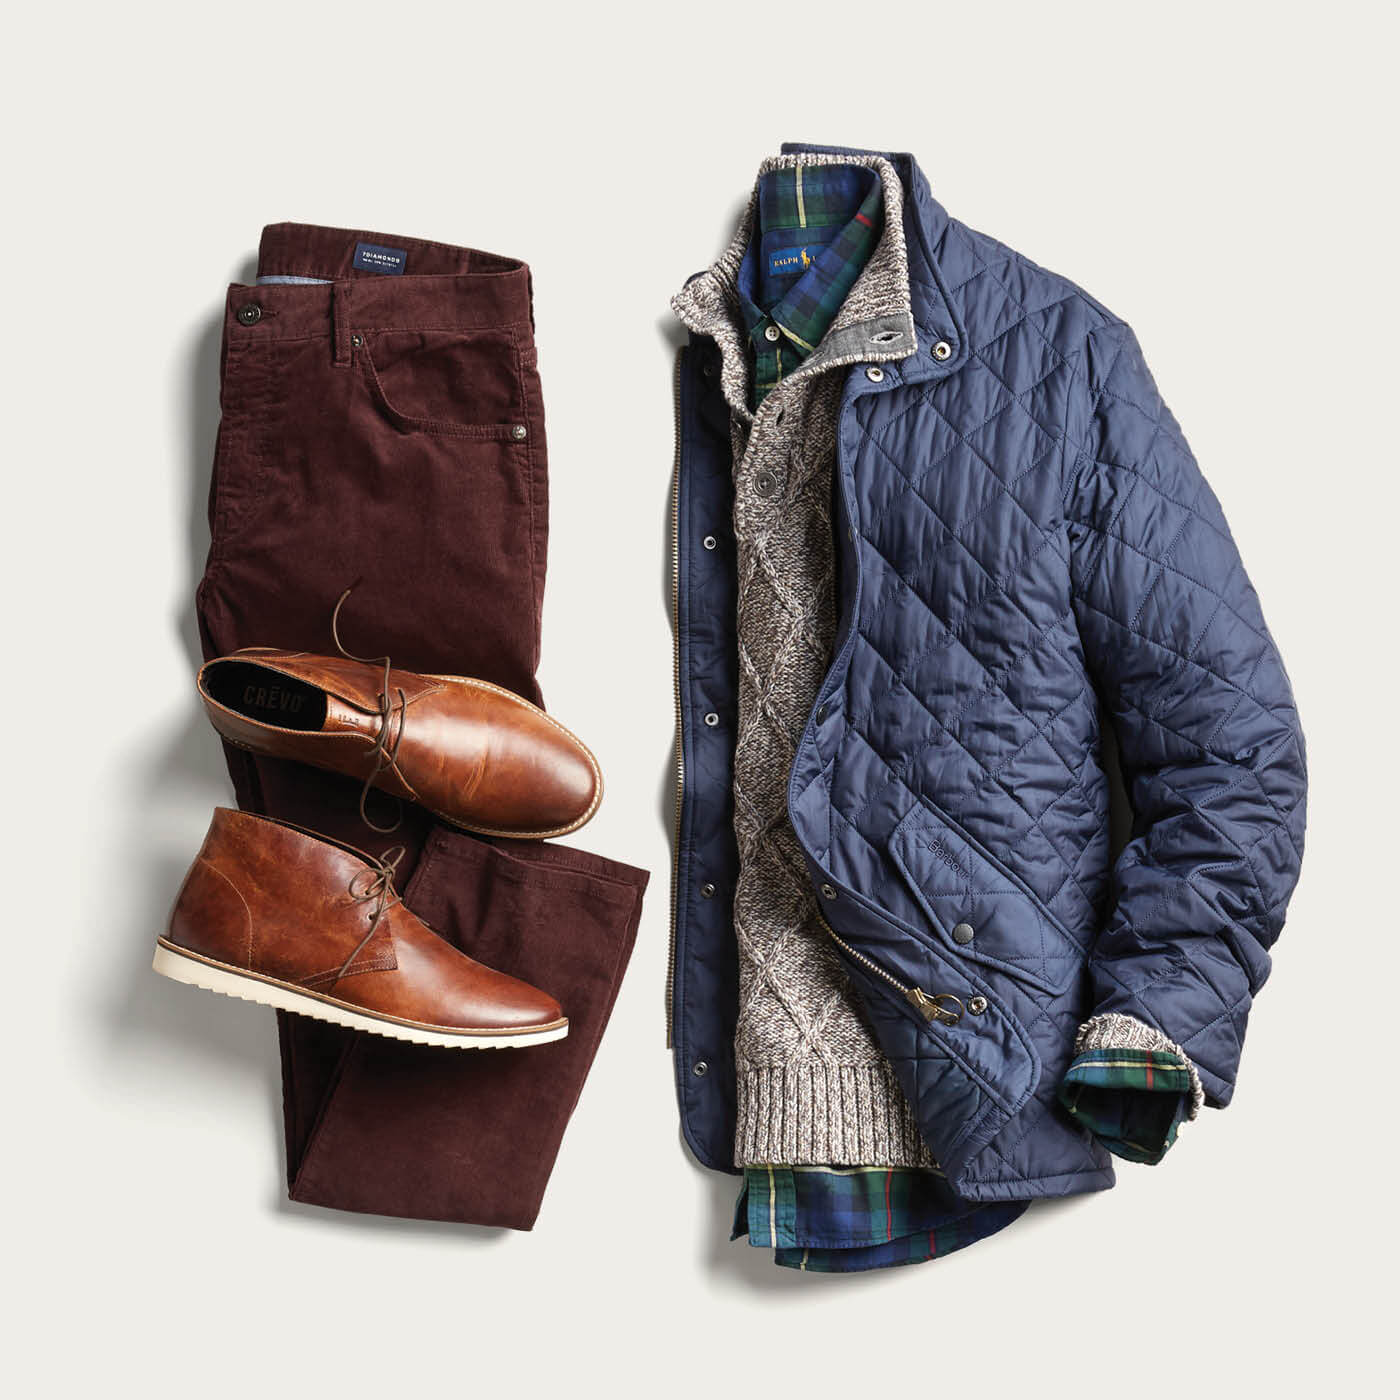 Men\u0027s Winter Fashion \u0026 Style Tips